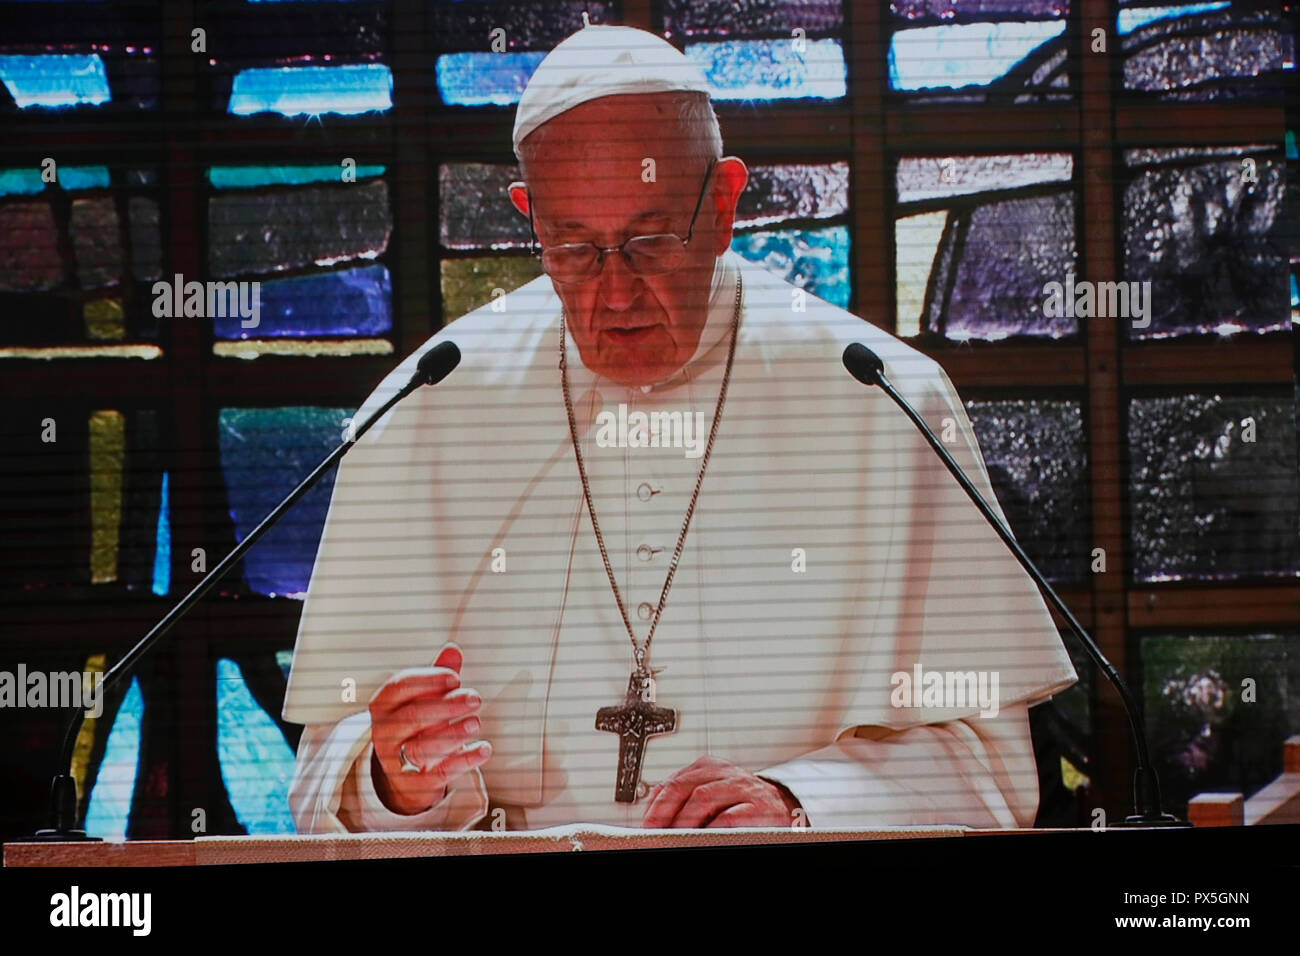 On 21 June 2018, the World Council of Churches receives a visit from Pope Francis of the Roman Catholic Church. Ecumenical prayer service view from th Stock Photo